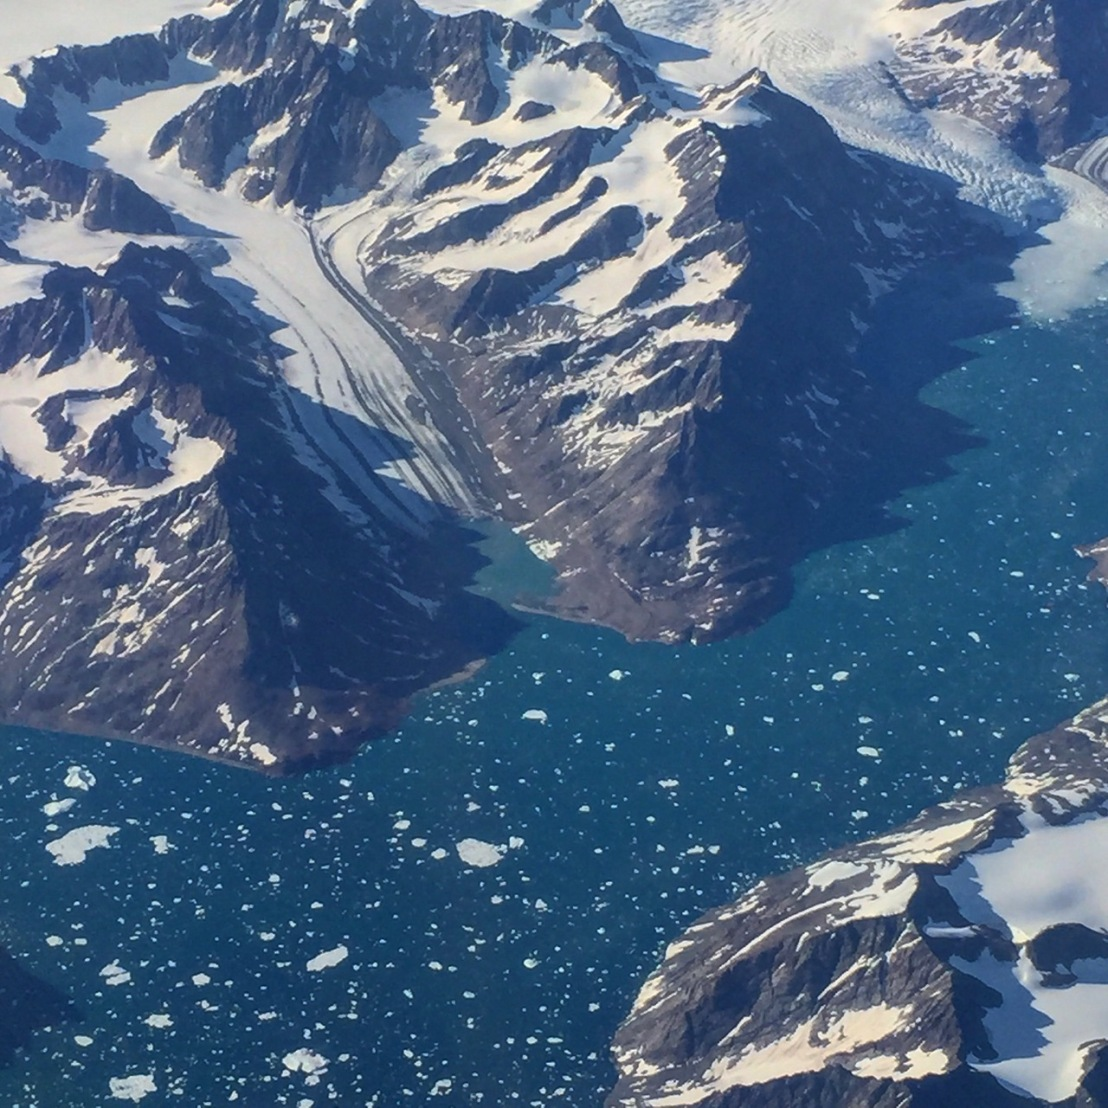 Scientists working in Greenland have been stunned by the speed at which ice is retreating.